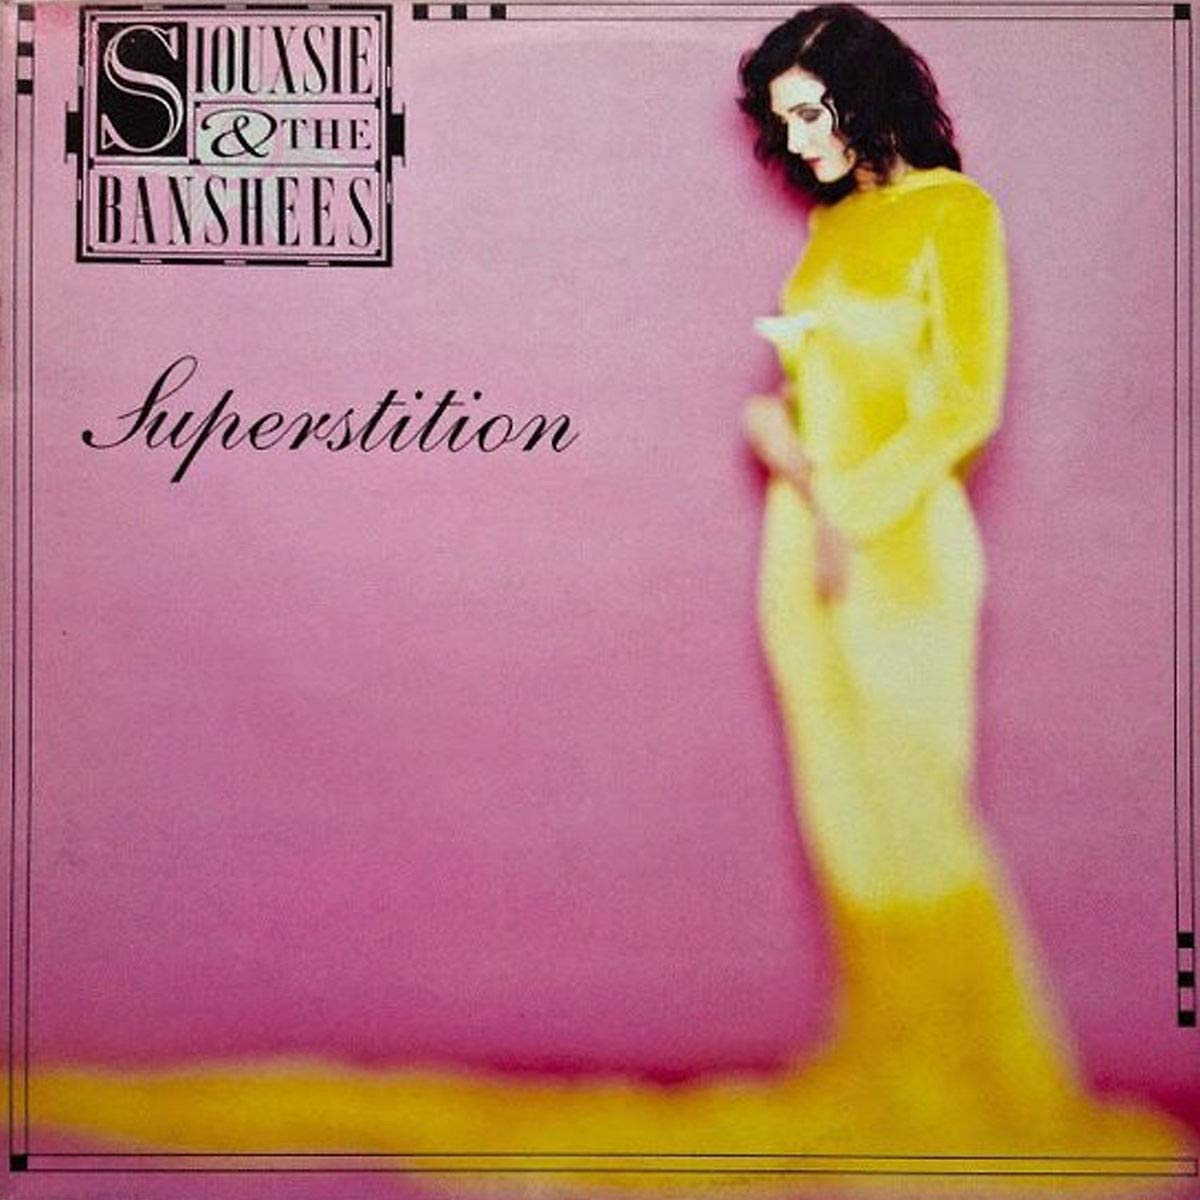 Siouxsie & The Banshees - Superstition [LP]